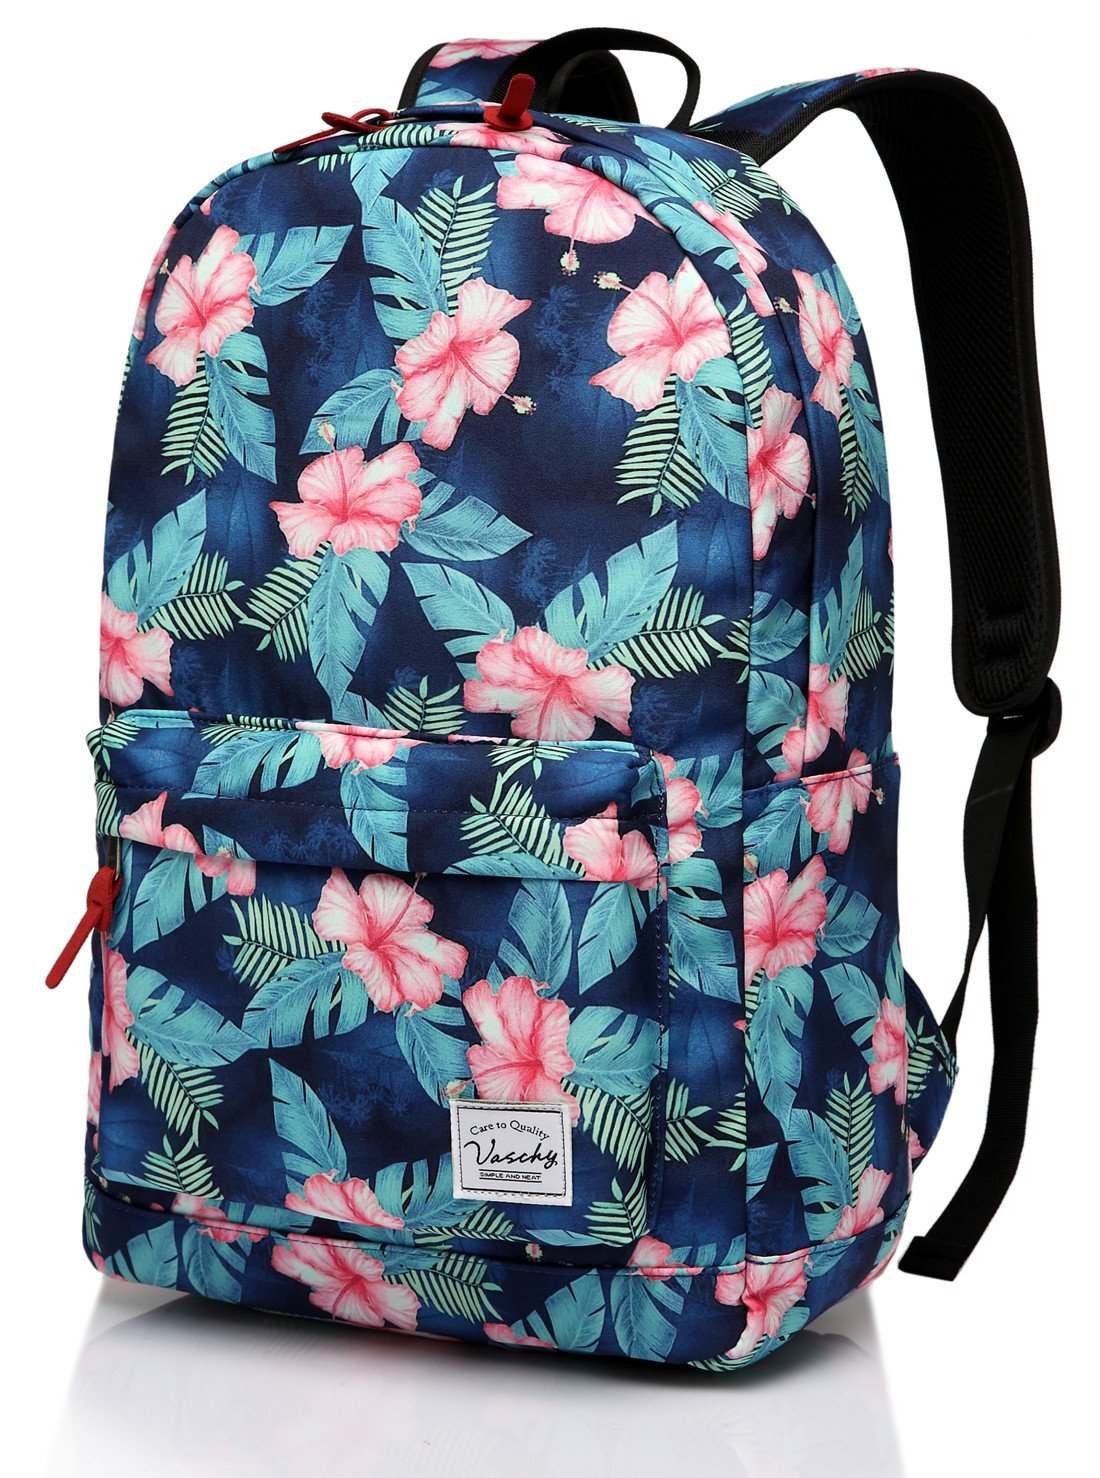 School Backpack,Fashion Korean Floral Middle School Teen Girls Backpack fits 15in Laptop by Vaschy